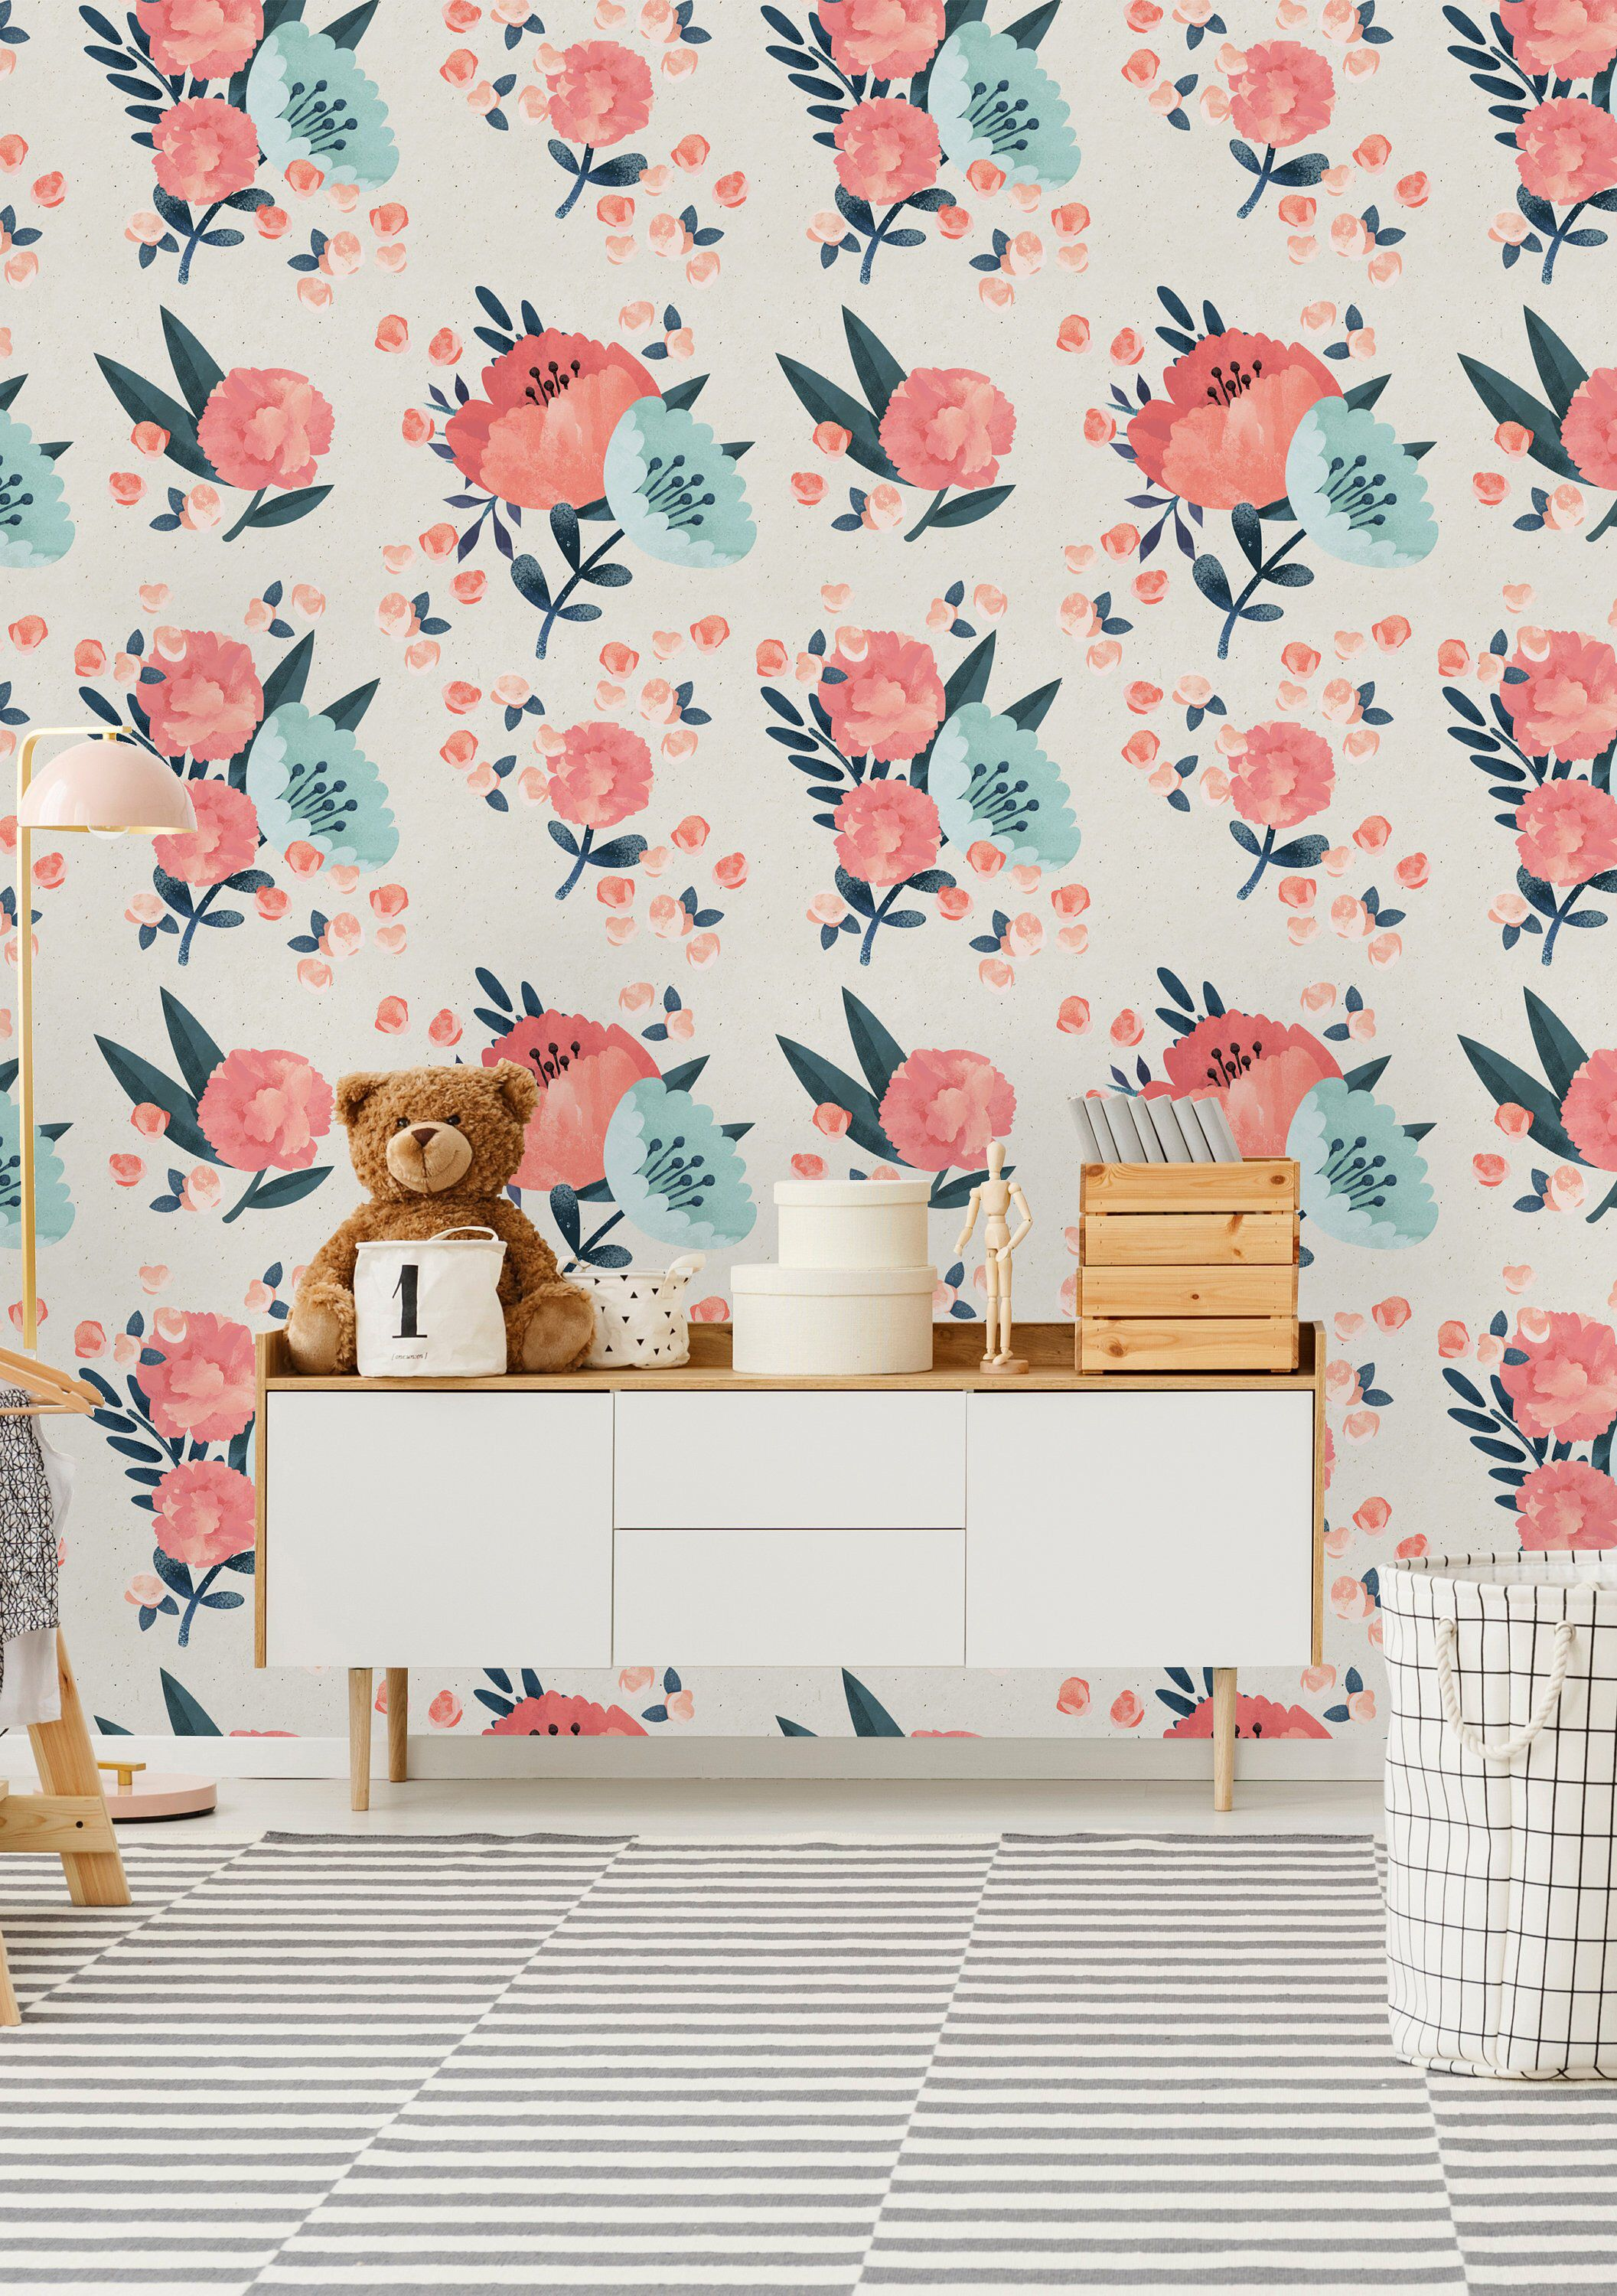 Removable Wallpaper Peel And Stick Wallpaper Self Adhesive Etsy Wallpaper Pink And Blue Removable Wallpaper Pink Wallpaper Bedroom